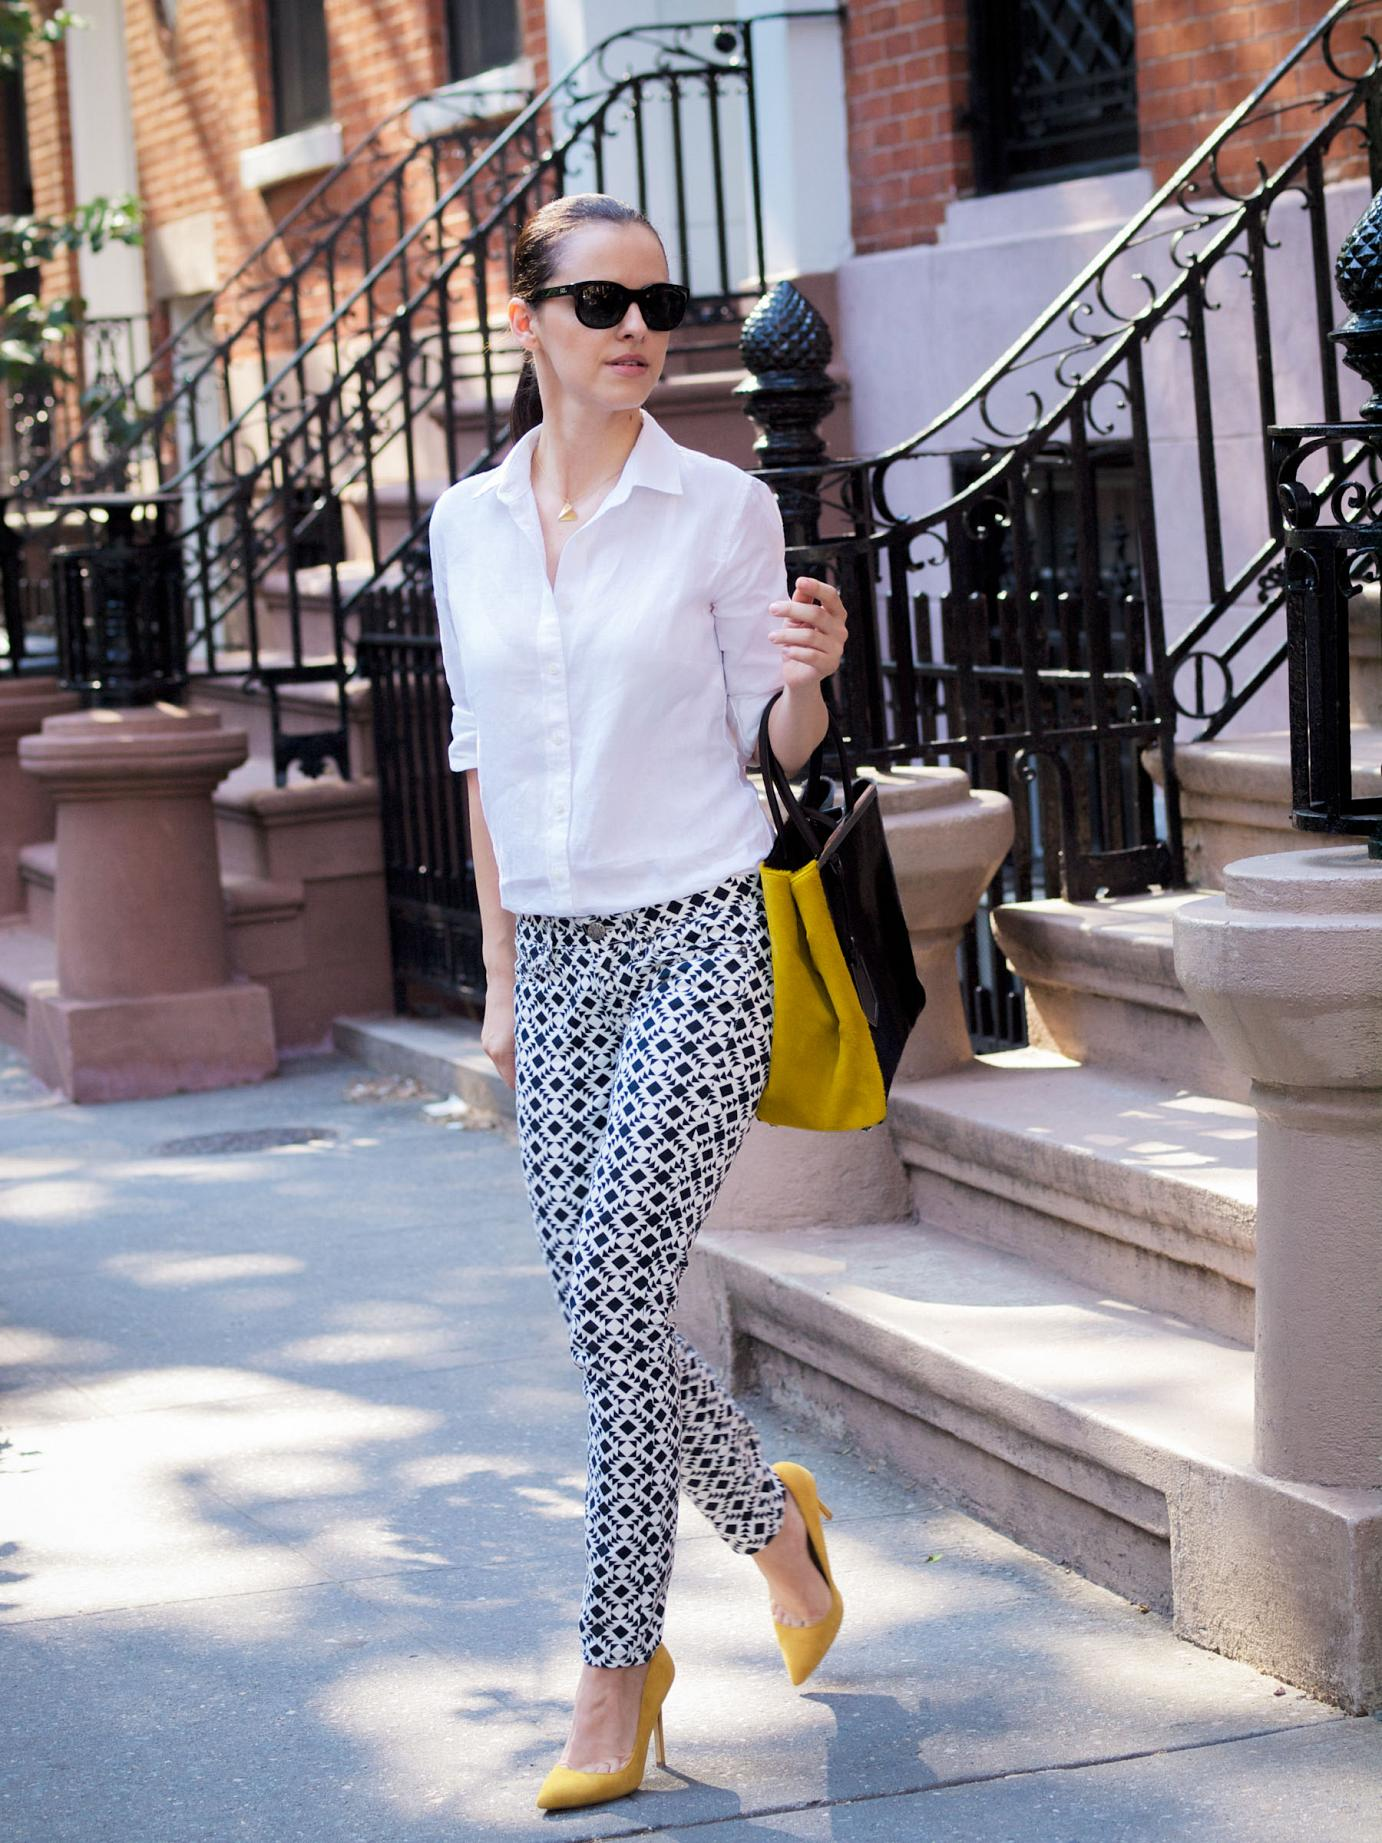 bittersweet colours, new york, street style, J.Crew jeans, Printed jeans, fendi bag, 2jours fendi bag, summer